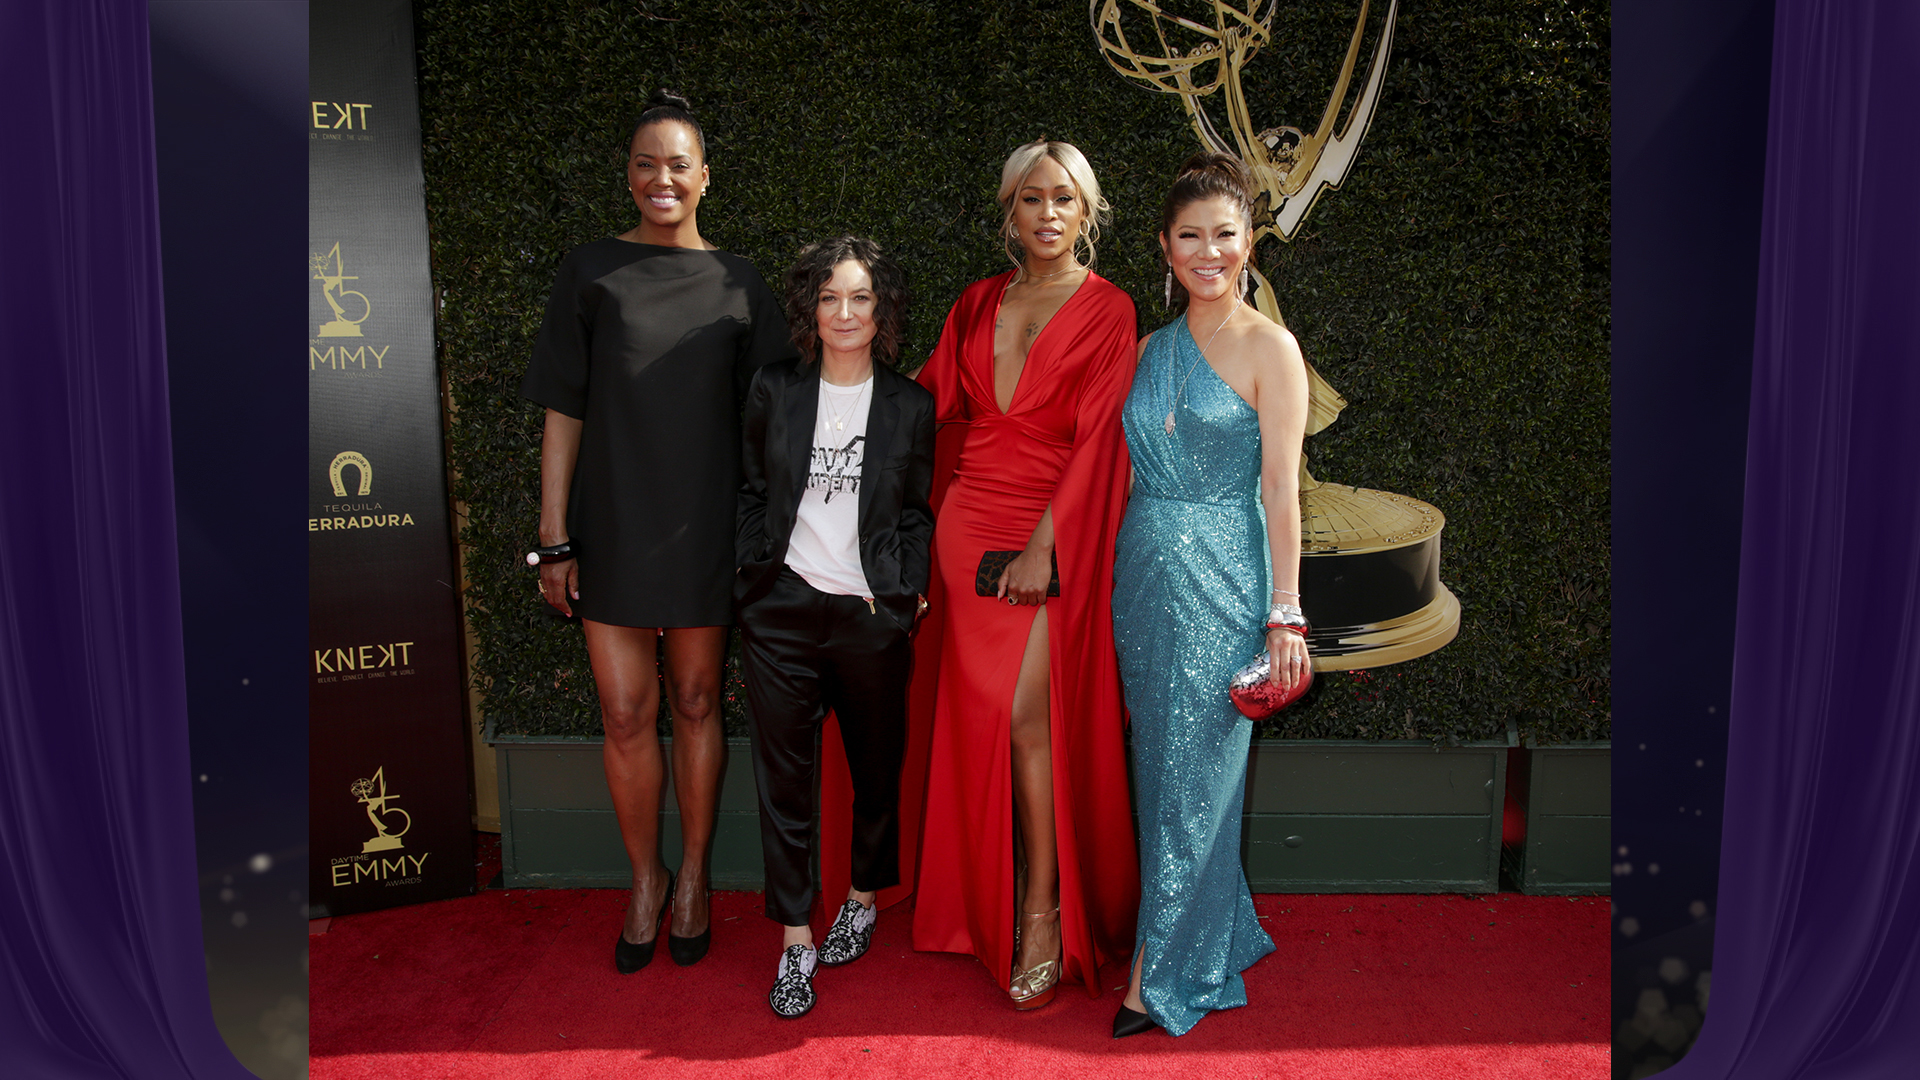 Aisha Tyler joins The Talk hosts Sara Gilbert, Eve, and Julie Chen before heading into the Daytime Emmy Awards.